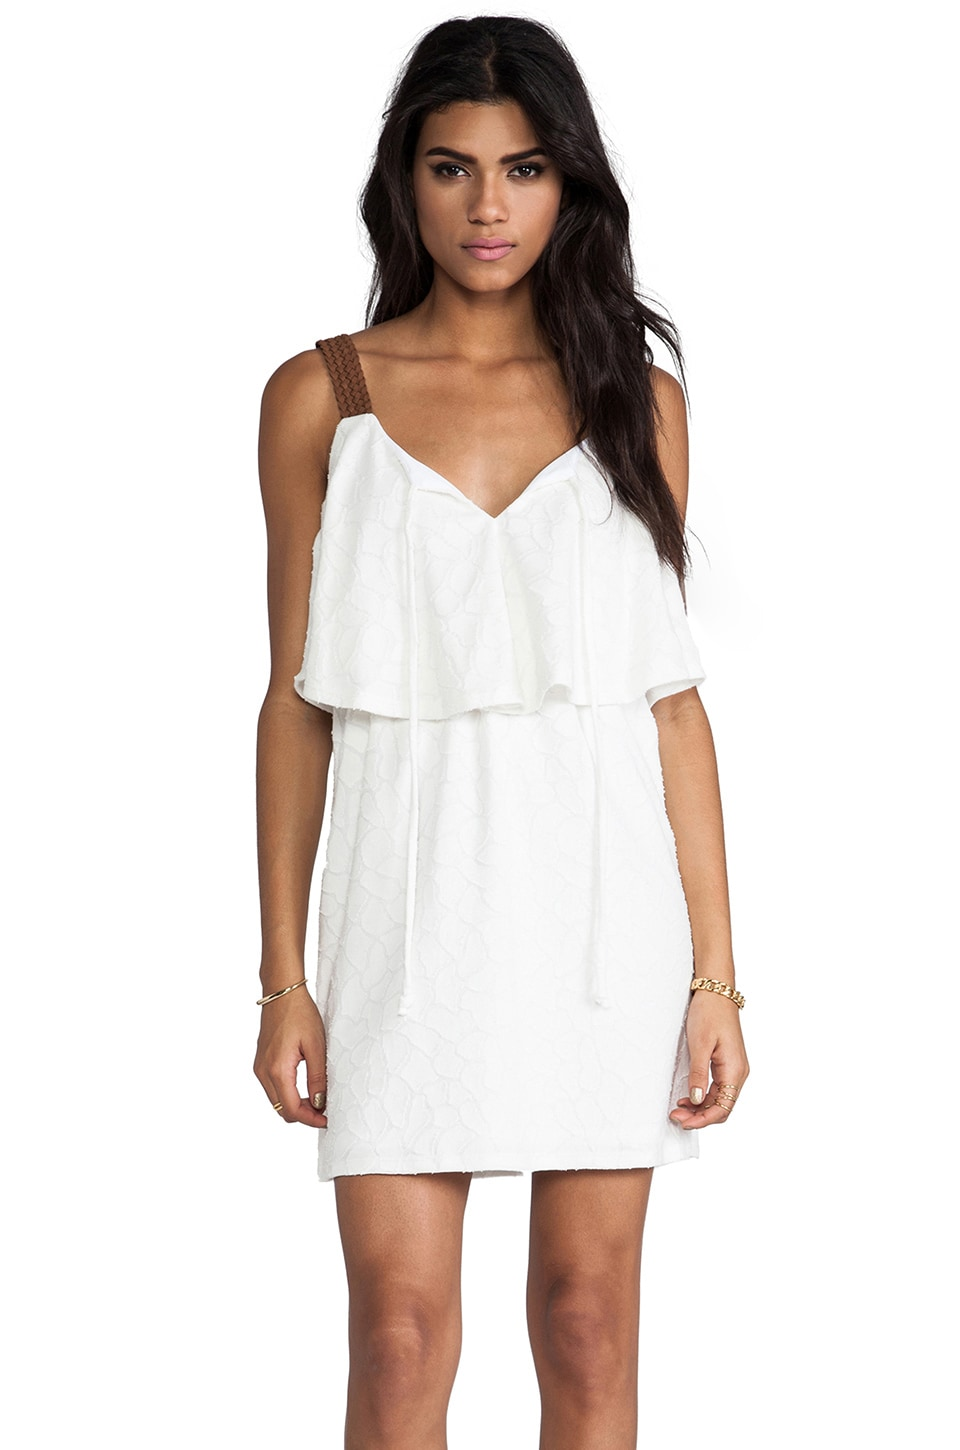 VAVA by Joy Han Wendy Babydoll Dress in White